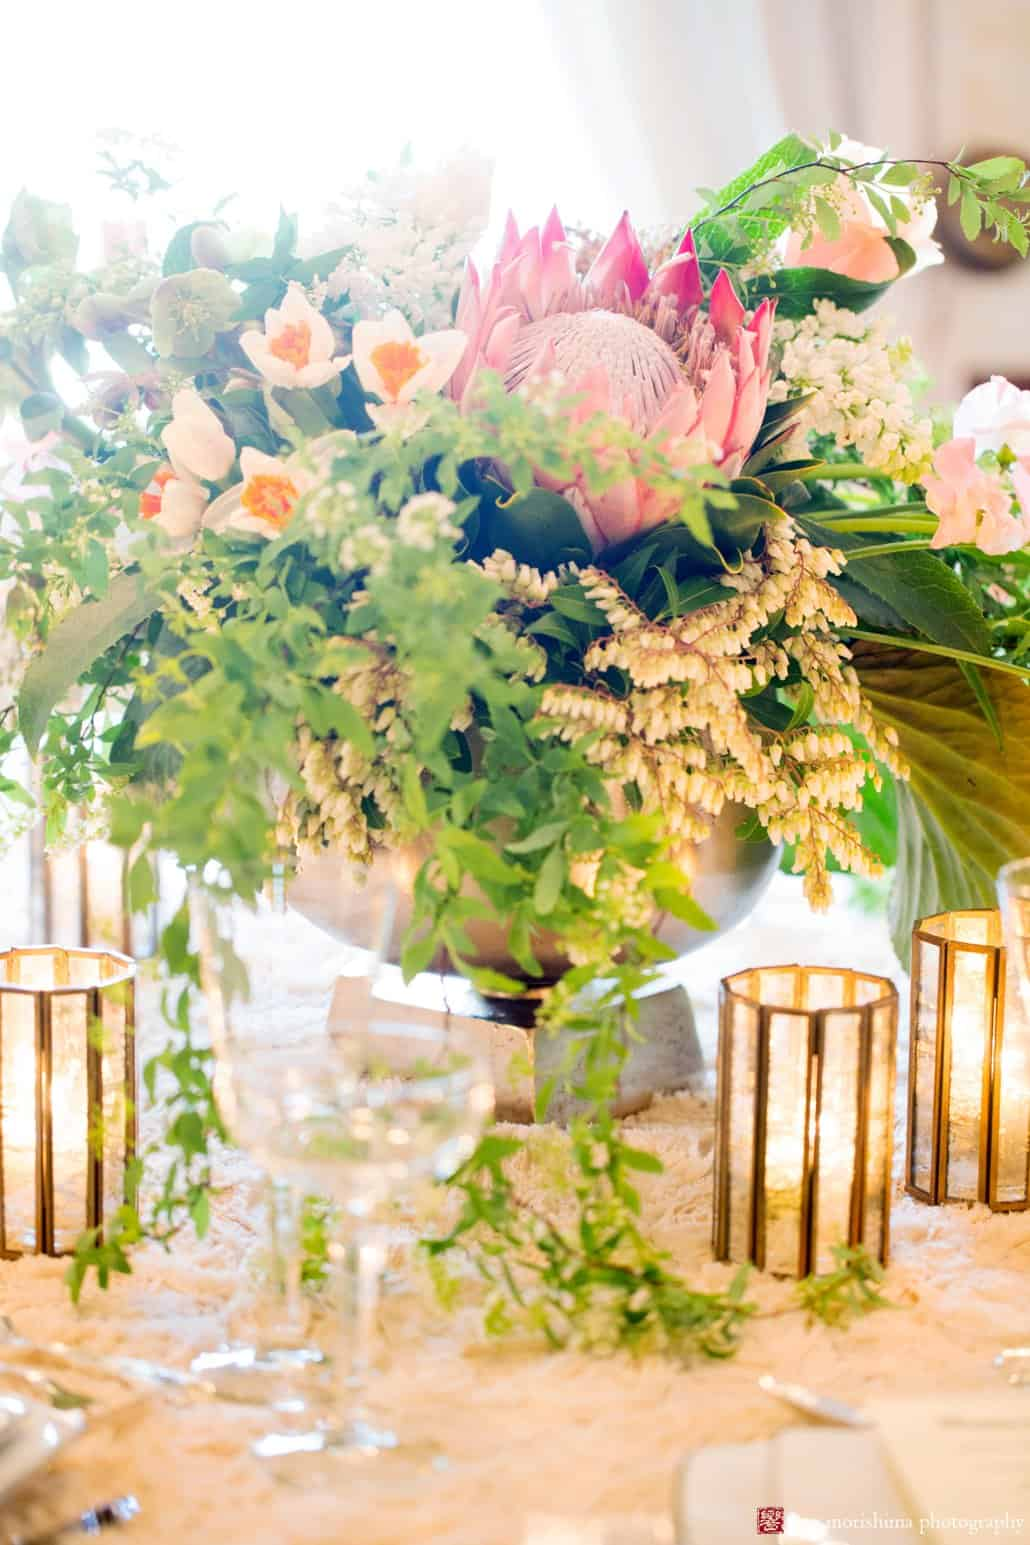 Unique and simple wedding idea: a single protea flower in tabletop centerpiece. This design is by Viburnum Designs in Princeton.